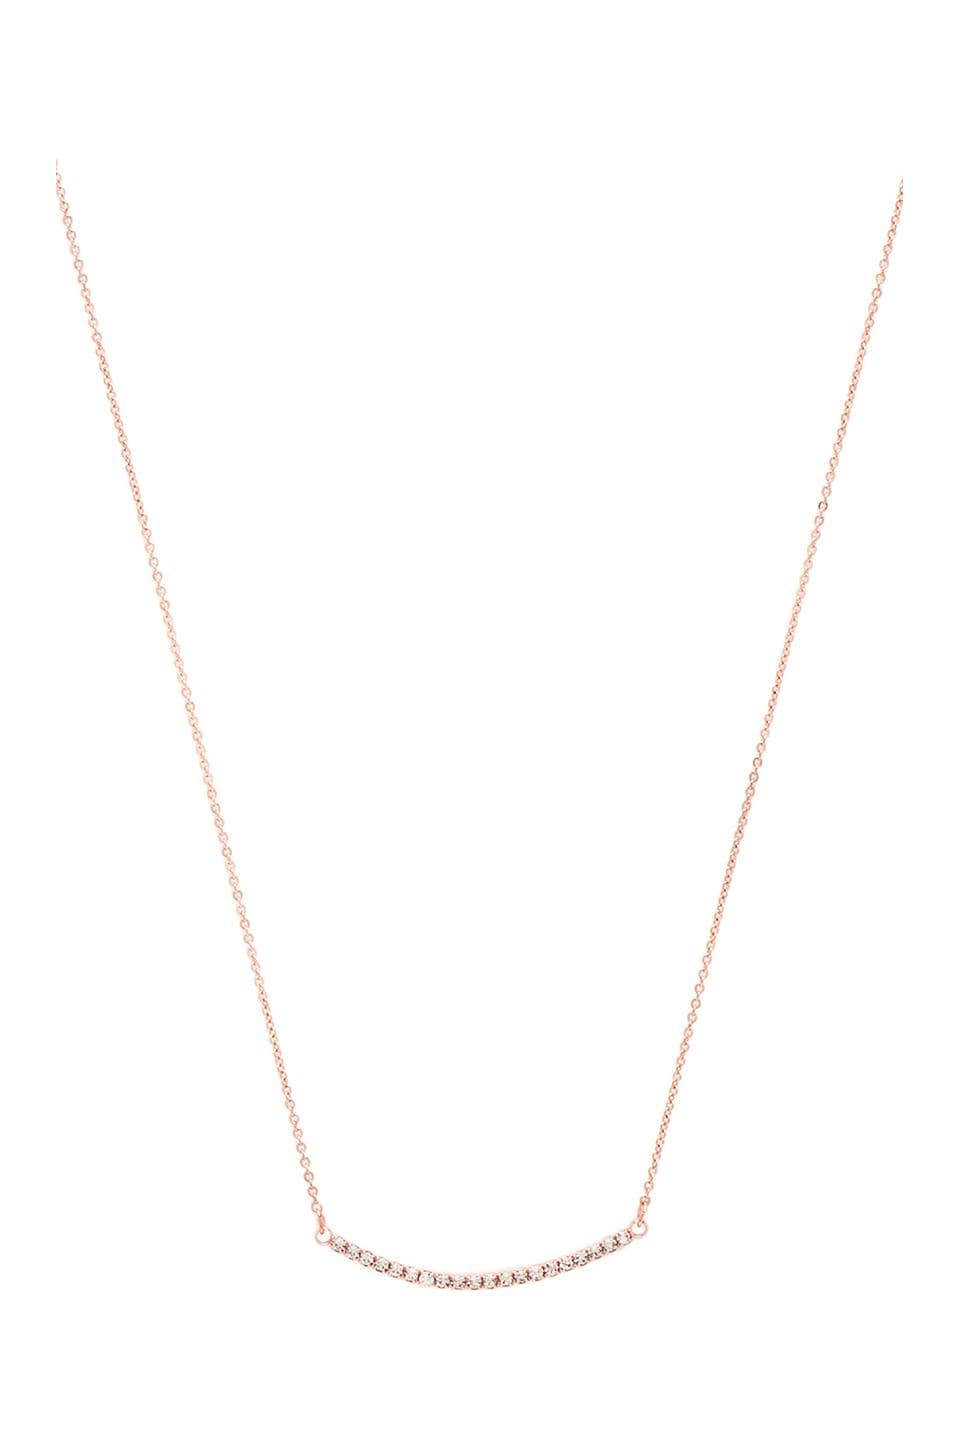 Lucky Star Valle Necklace in Rose Gold